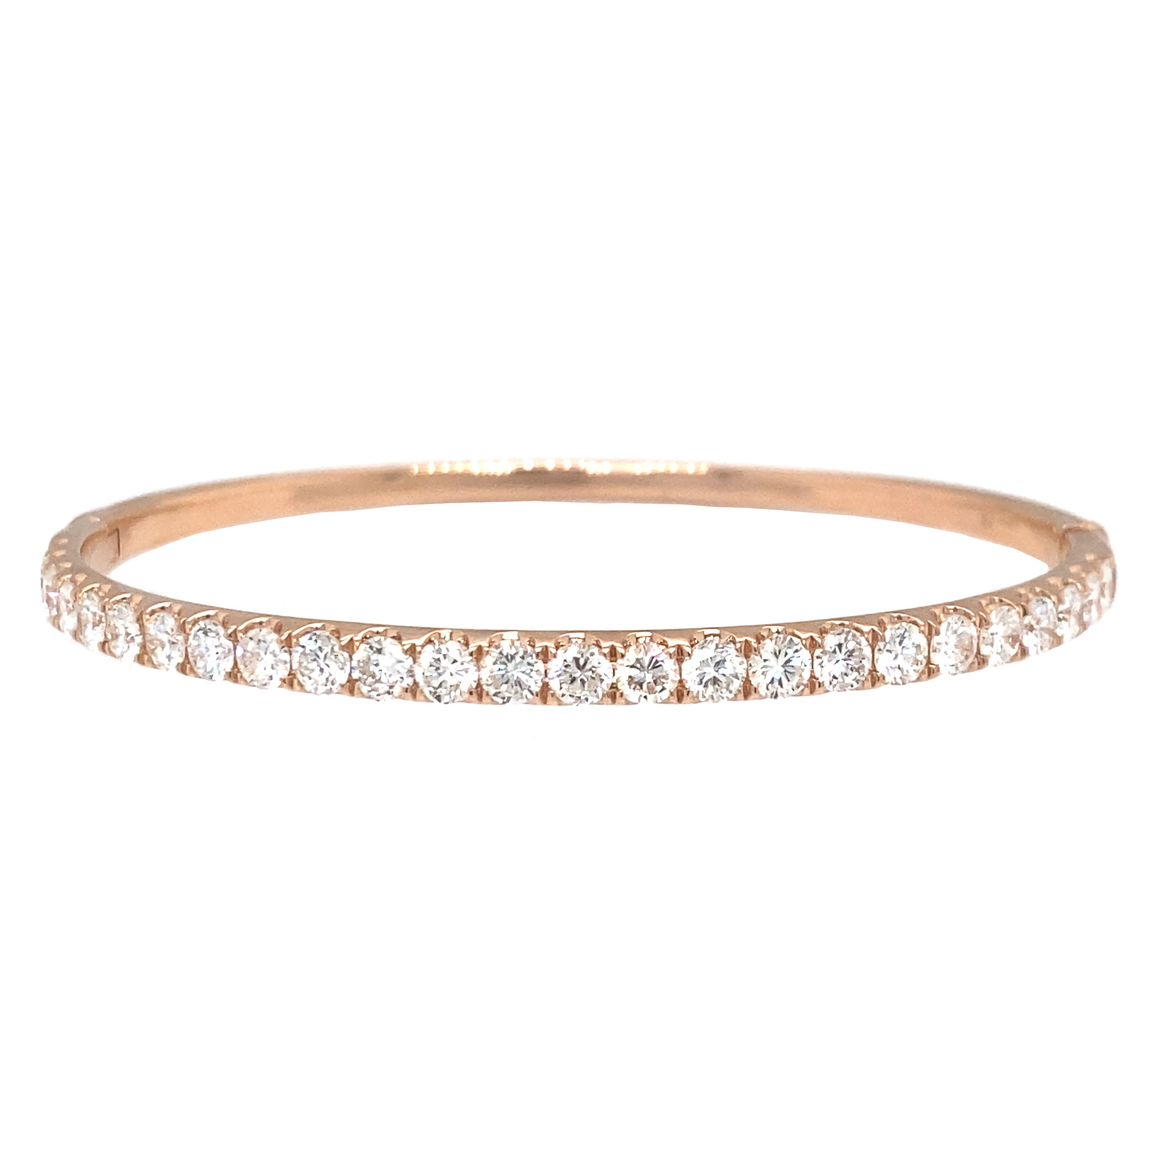 Half-Way Oval Hinged Bangle - Lesley Ann Jewels